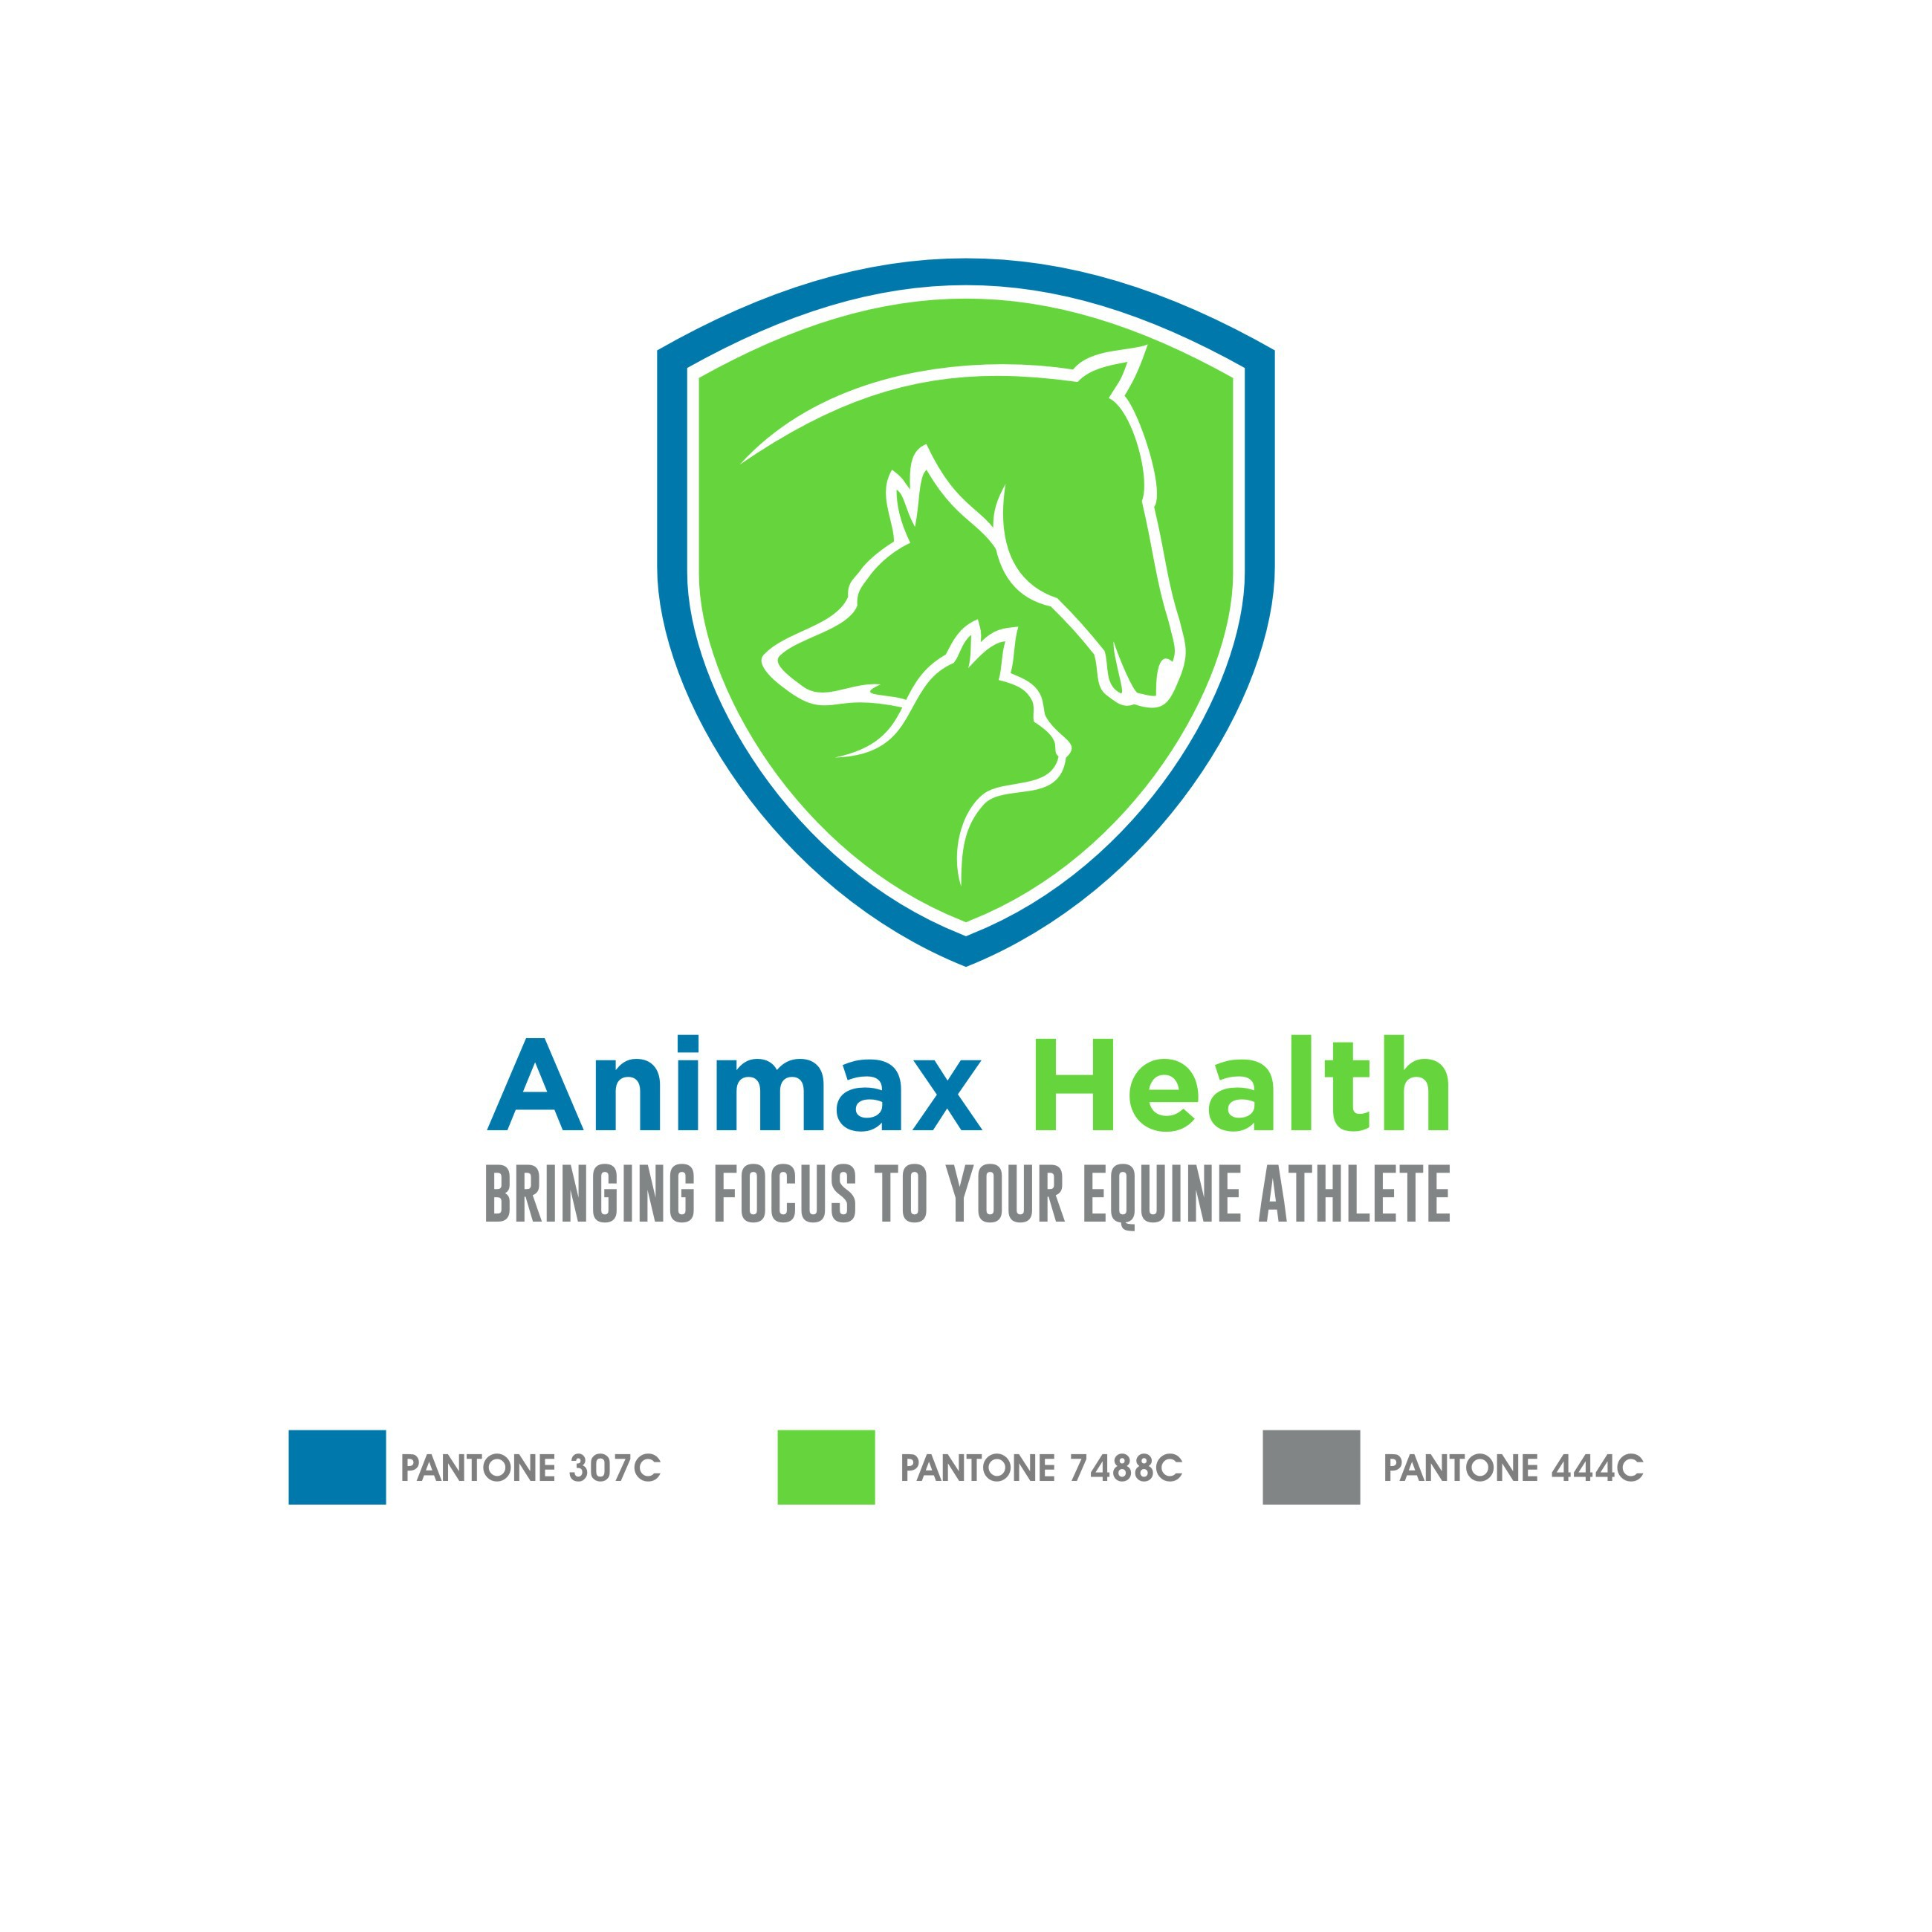 Launch logo for new equestrian company: Animax Health